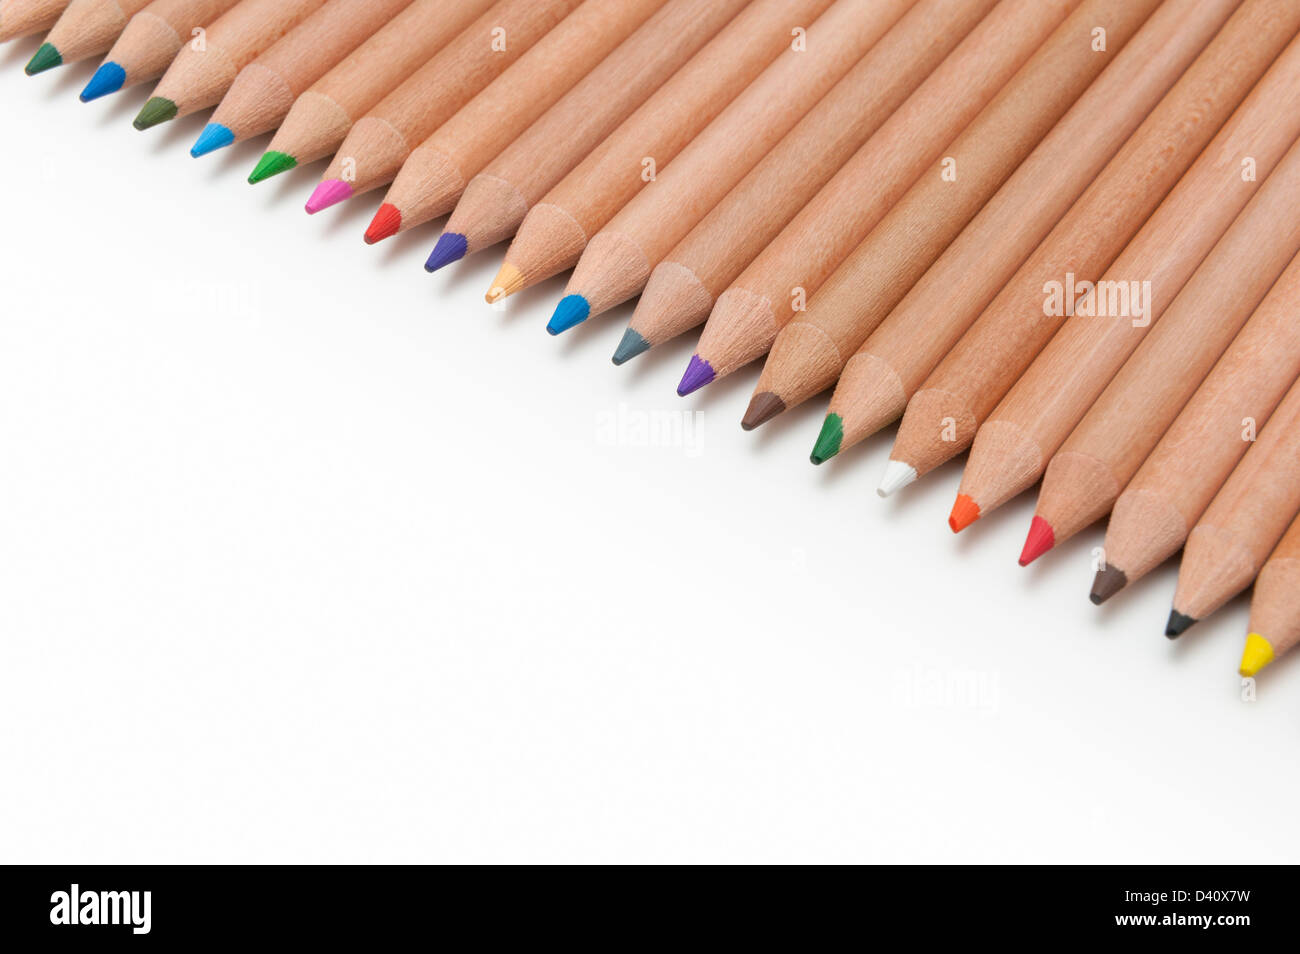 Line of coloured pencils on a white background - Stock Image